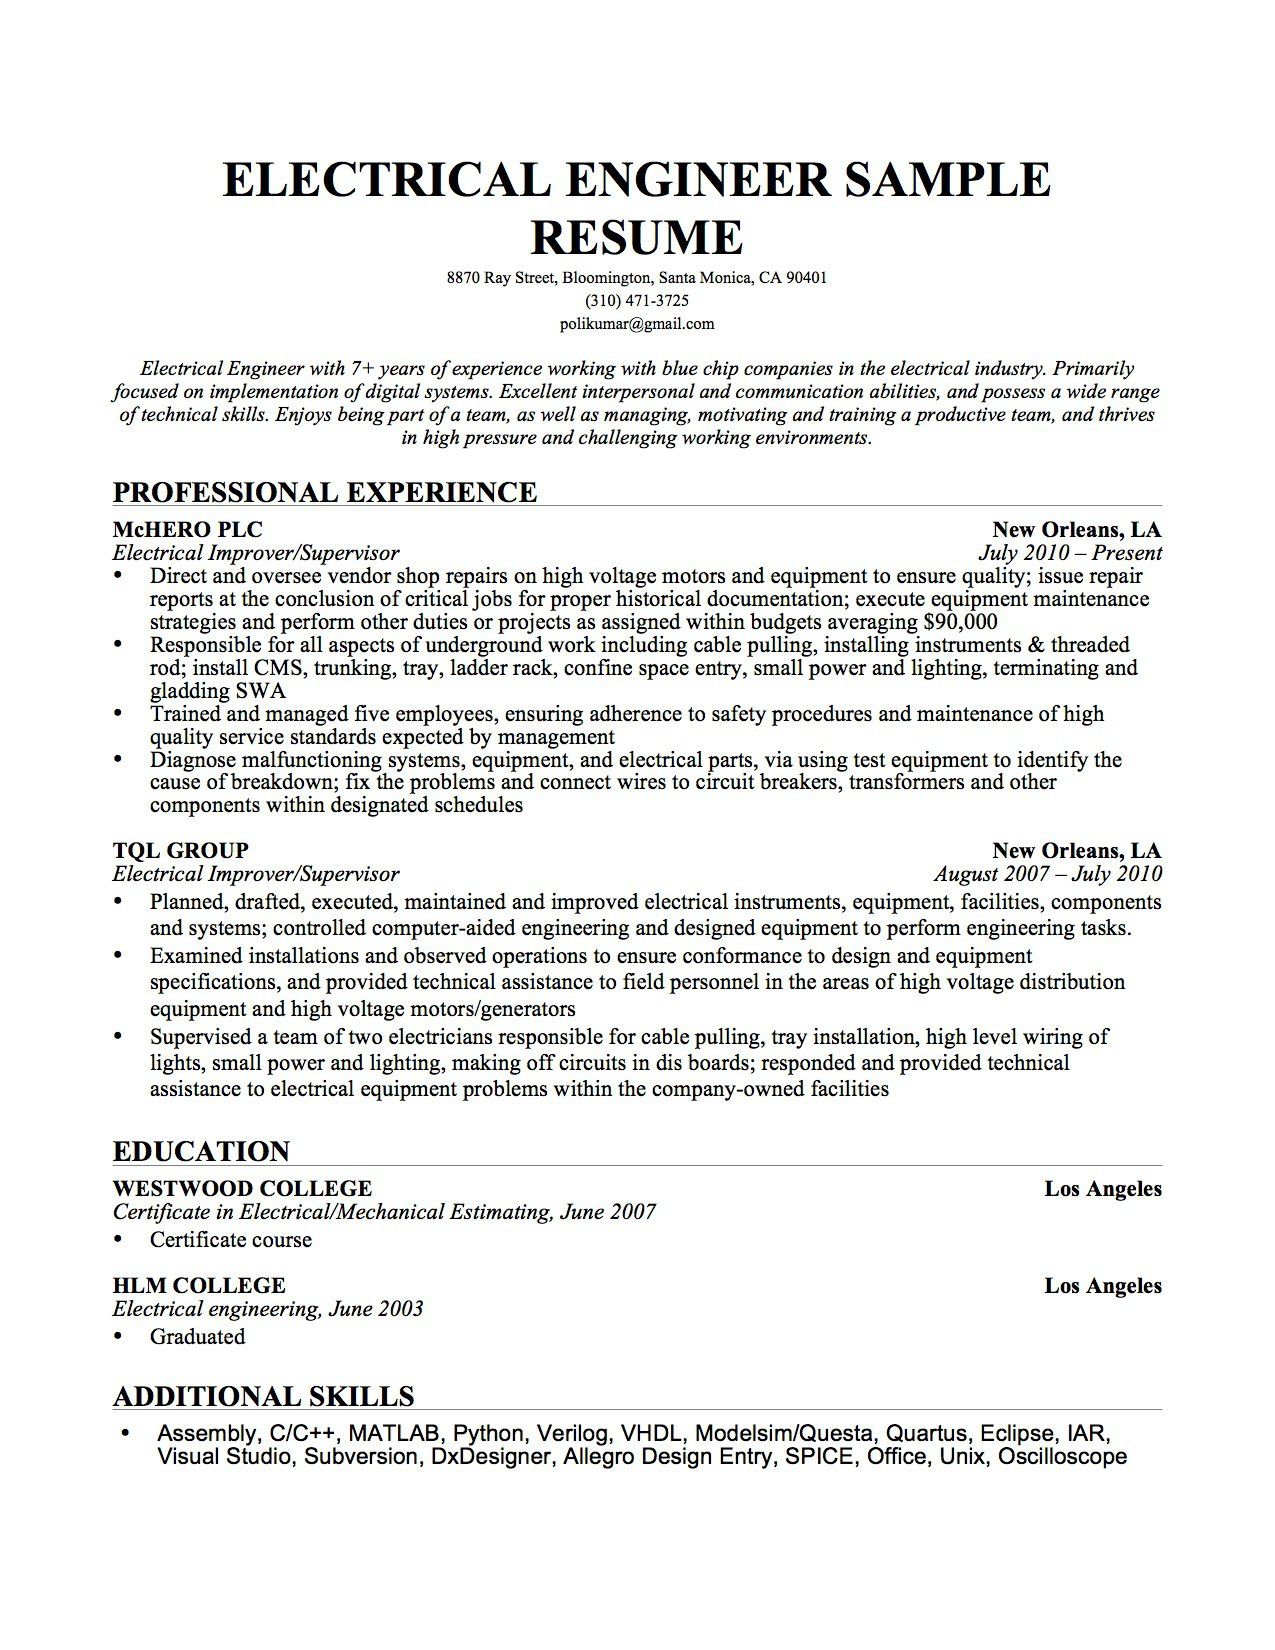 engineering resume cover letter samplesfirst restore instance with no work save fragment instance android